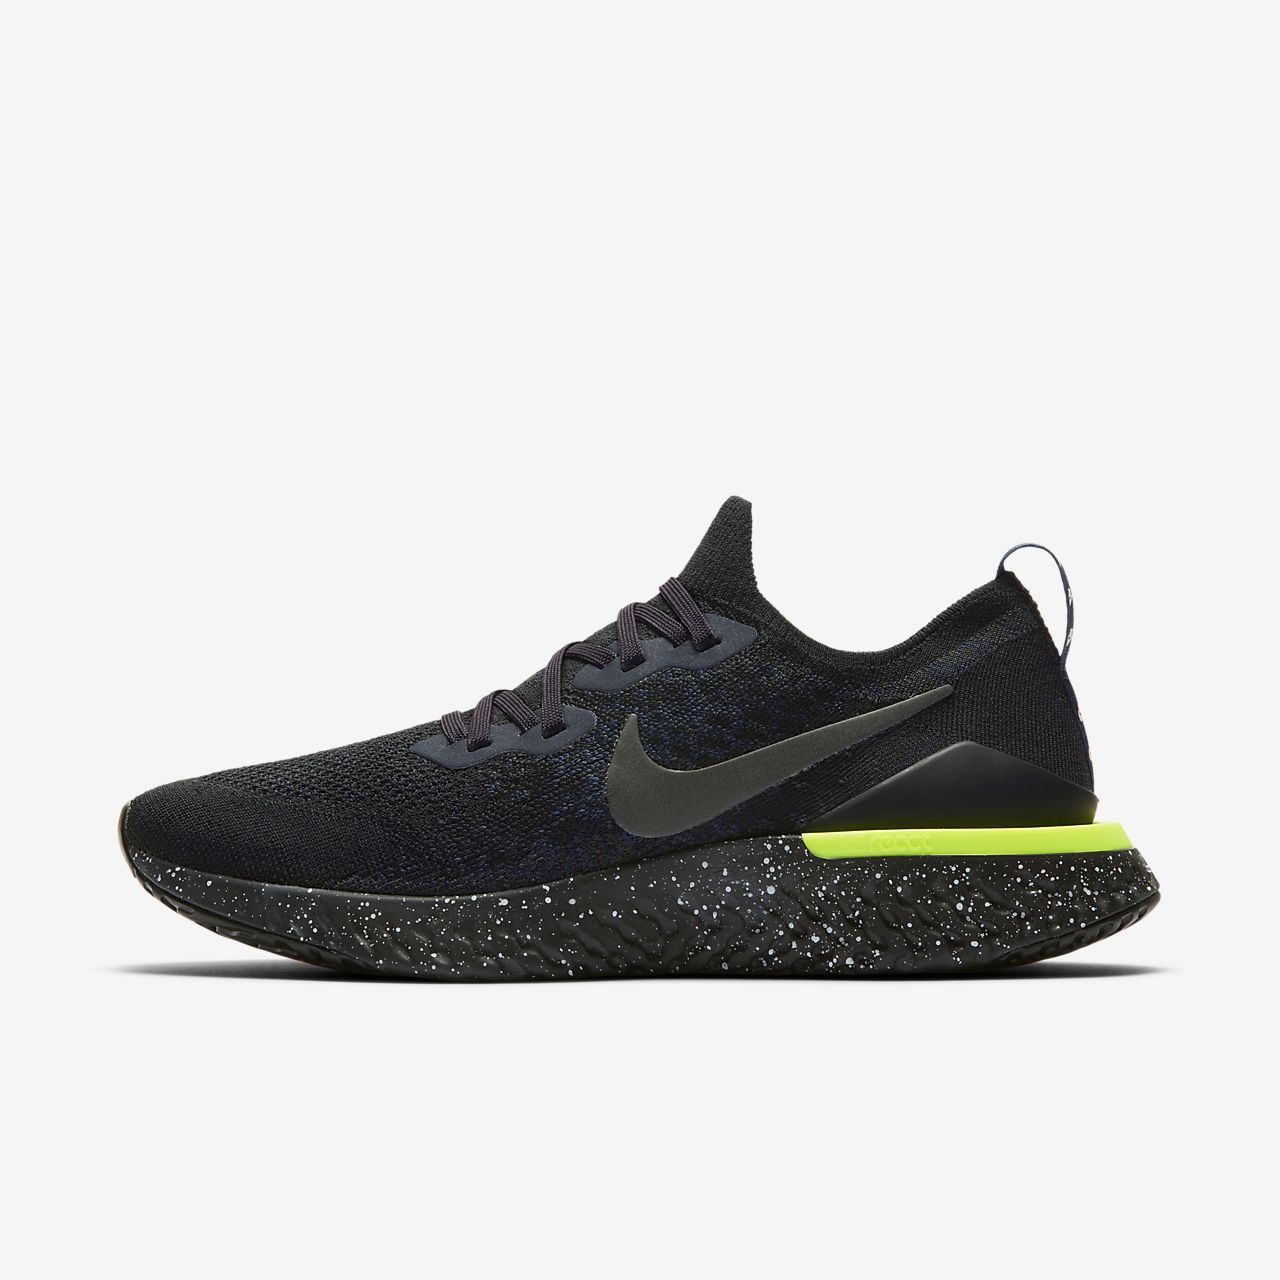 Chaussure de running Nike Epic React Flyknit 2 SE pour Homme